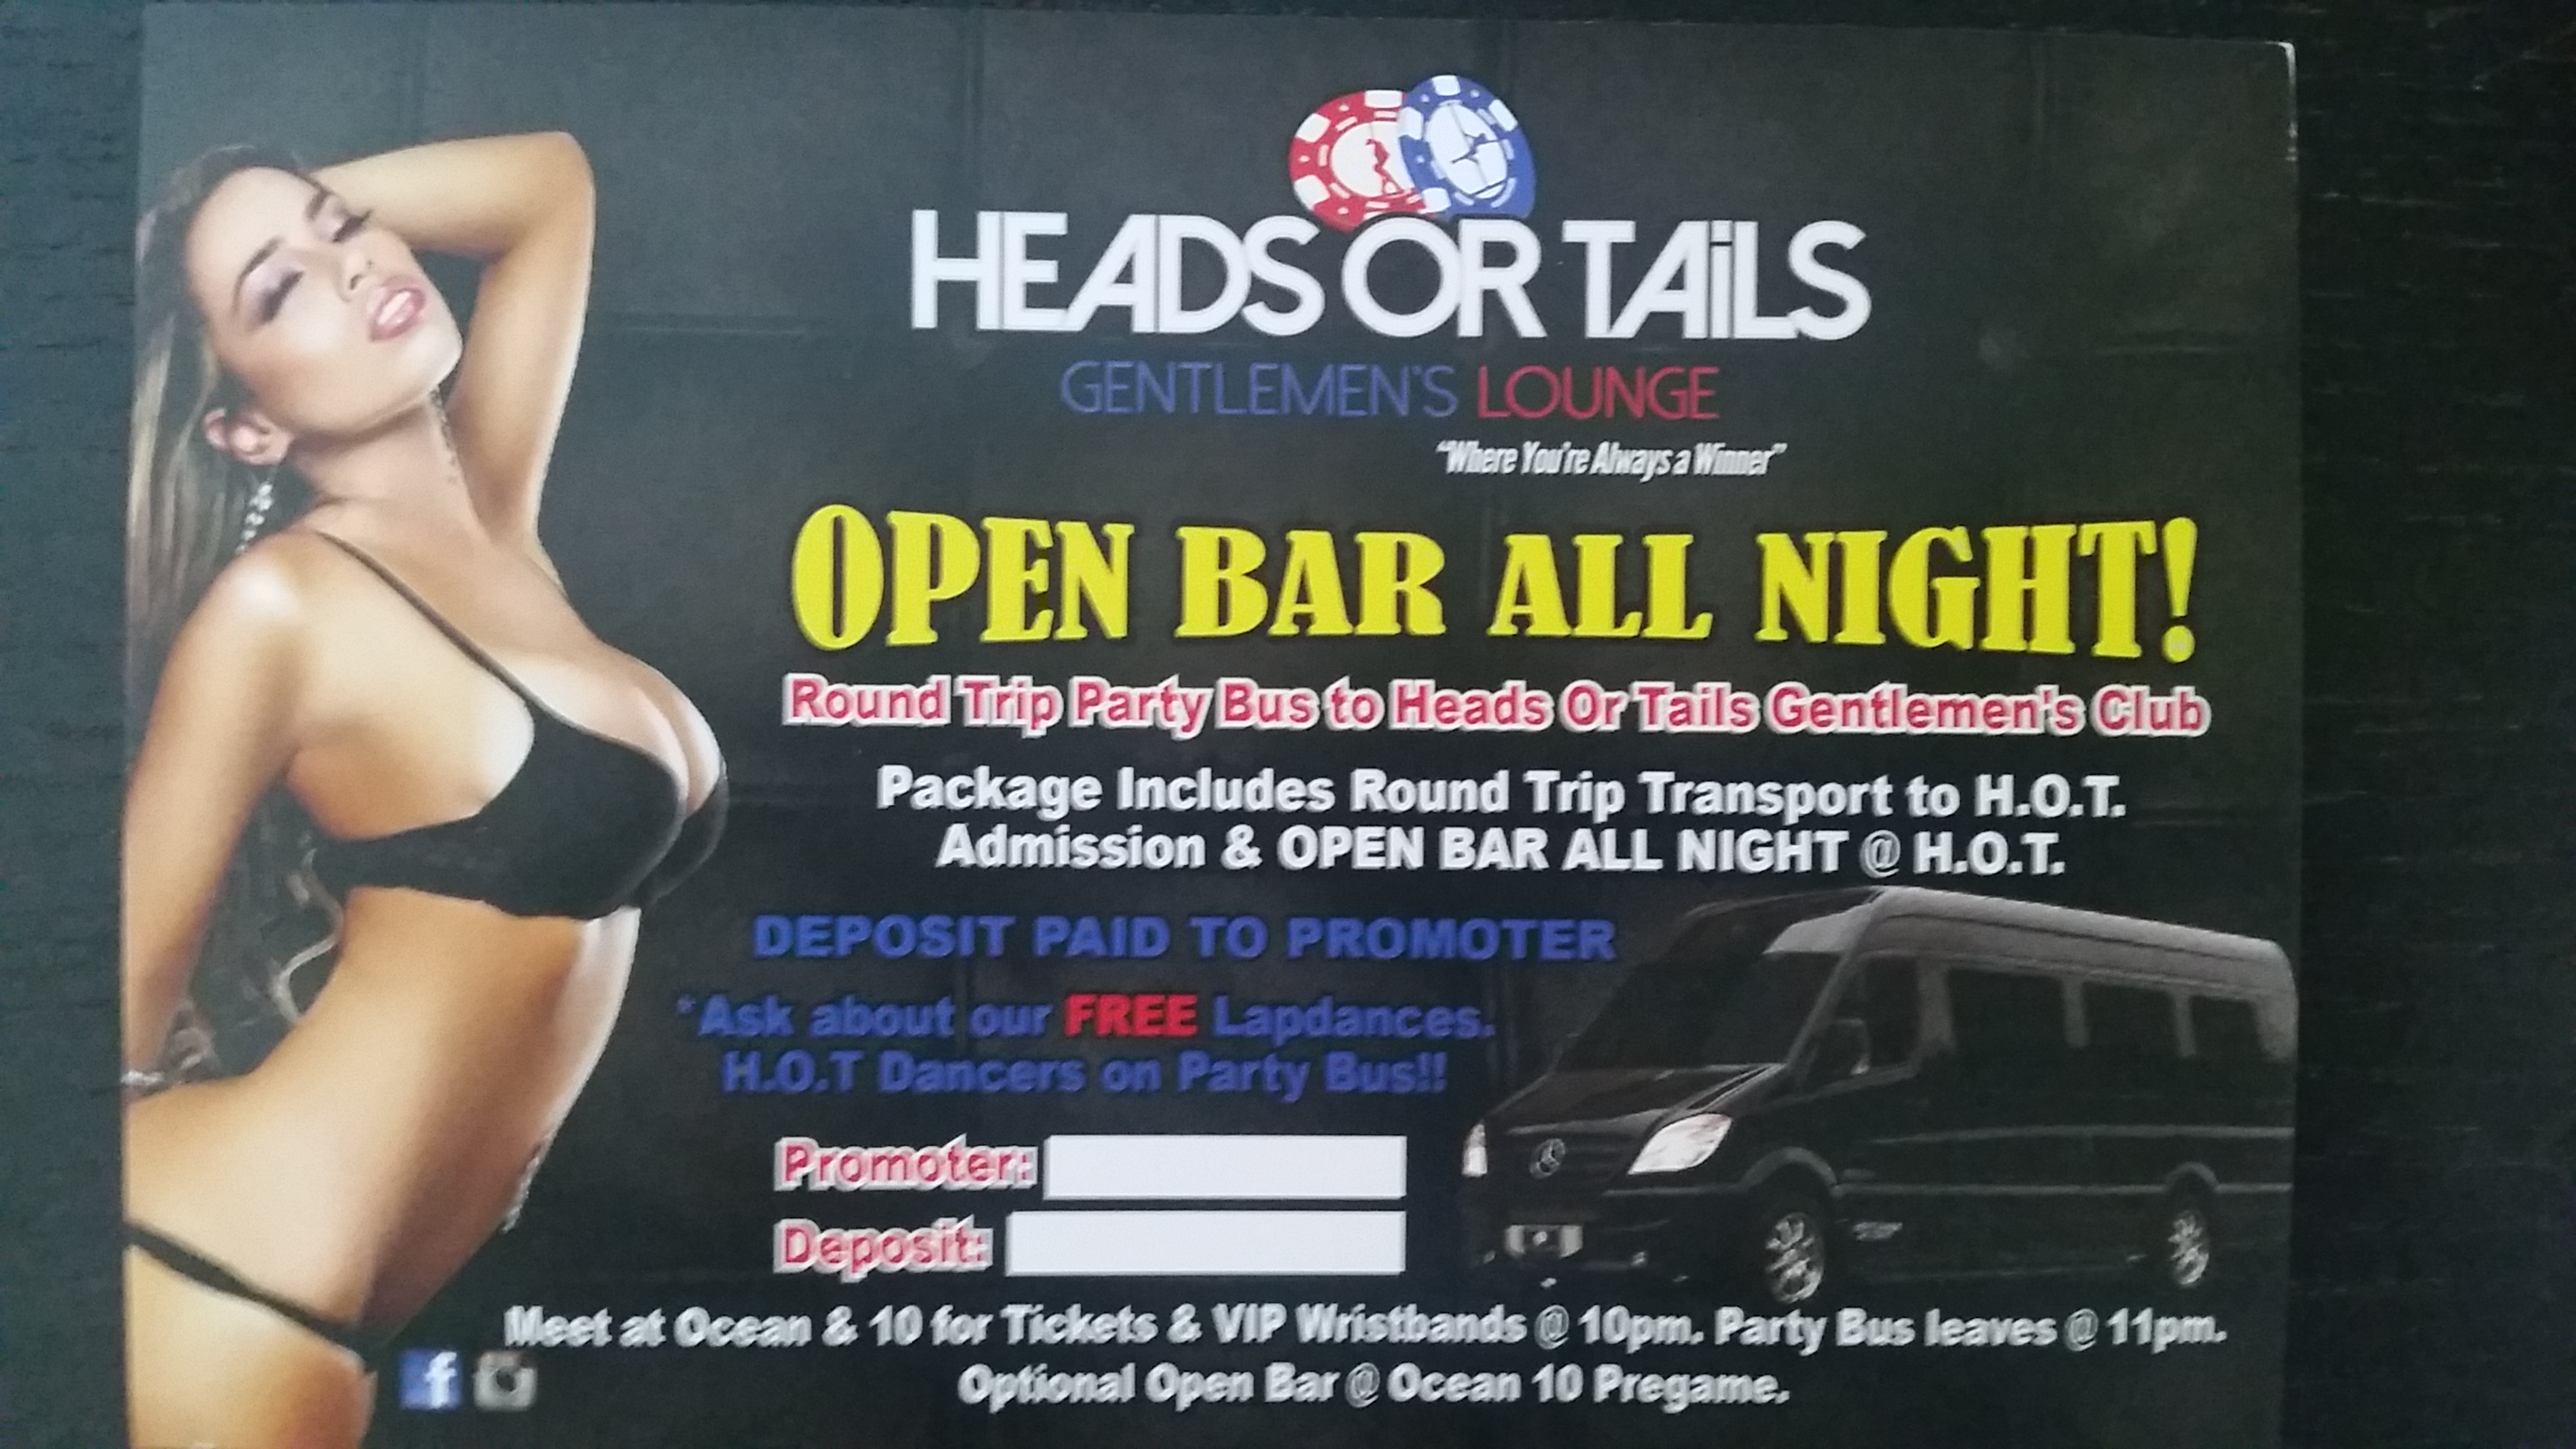 Open Bar ALL NIGHT @ HEADS OR TAILS Gentlemens Lounge